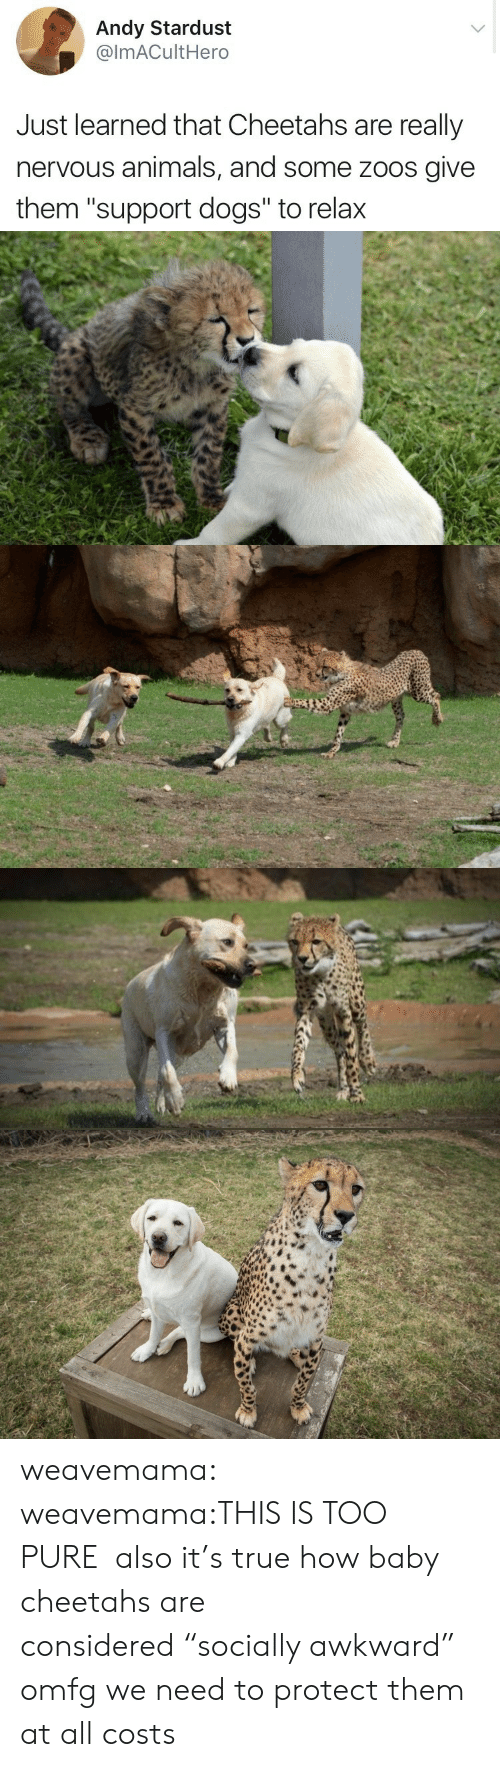 """Animals, Dogs, and True: Andy Stardust  @lmACultHero  Just learned that Cheetahs are really  nervous animals, and some zoos give  them """"support dogs"""" to relax weavemama:  weavemama:THIS IS TOO PURE also it's true how baby cheetahs are considered""""socially awkward"""" omfg we need to protect them at all costs"""